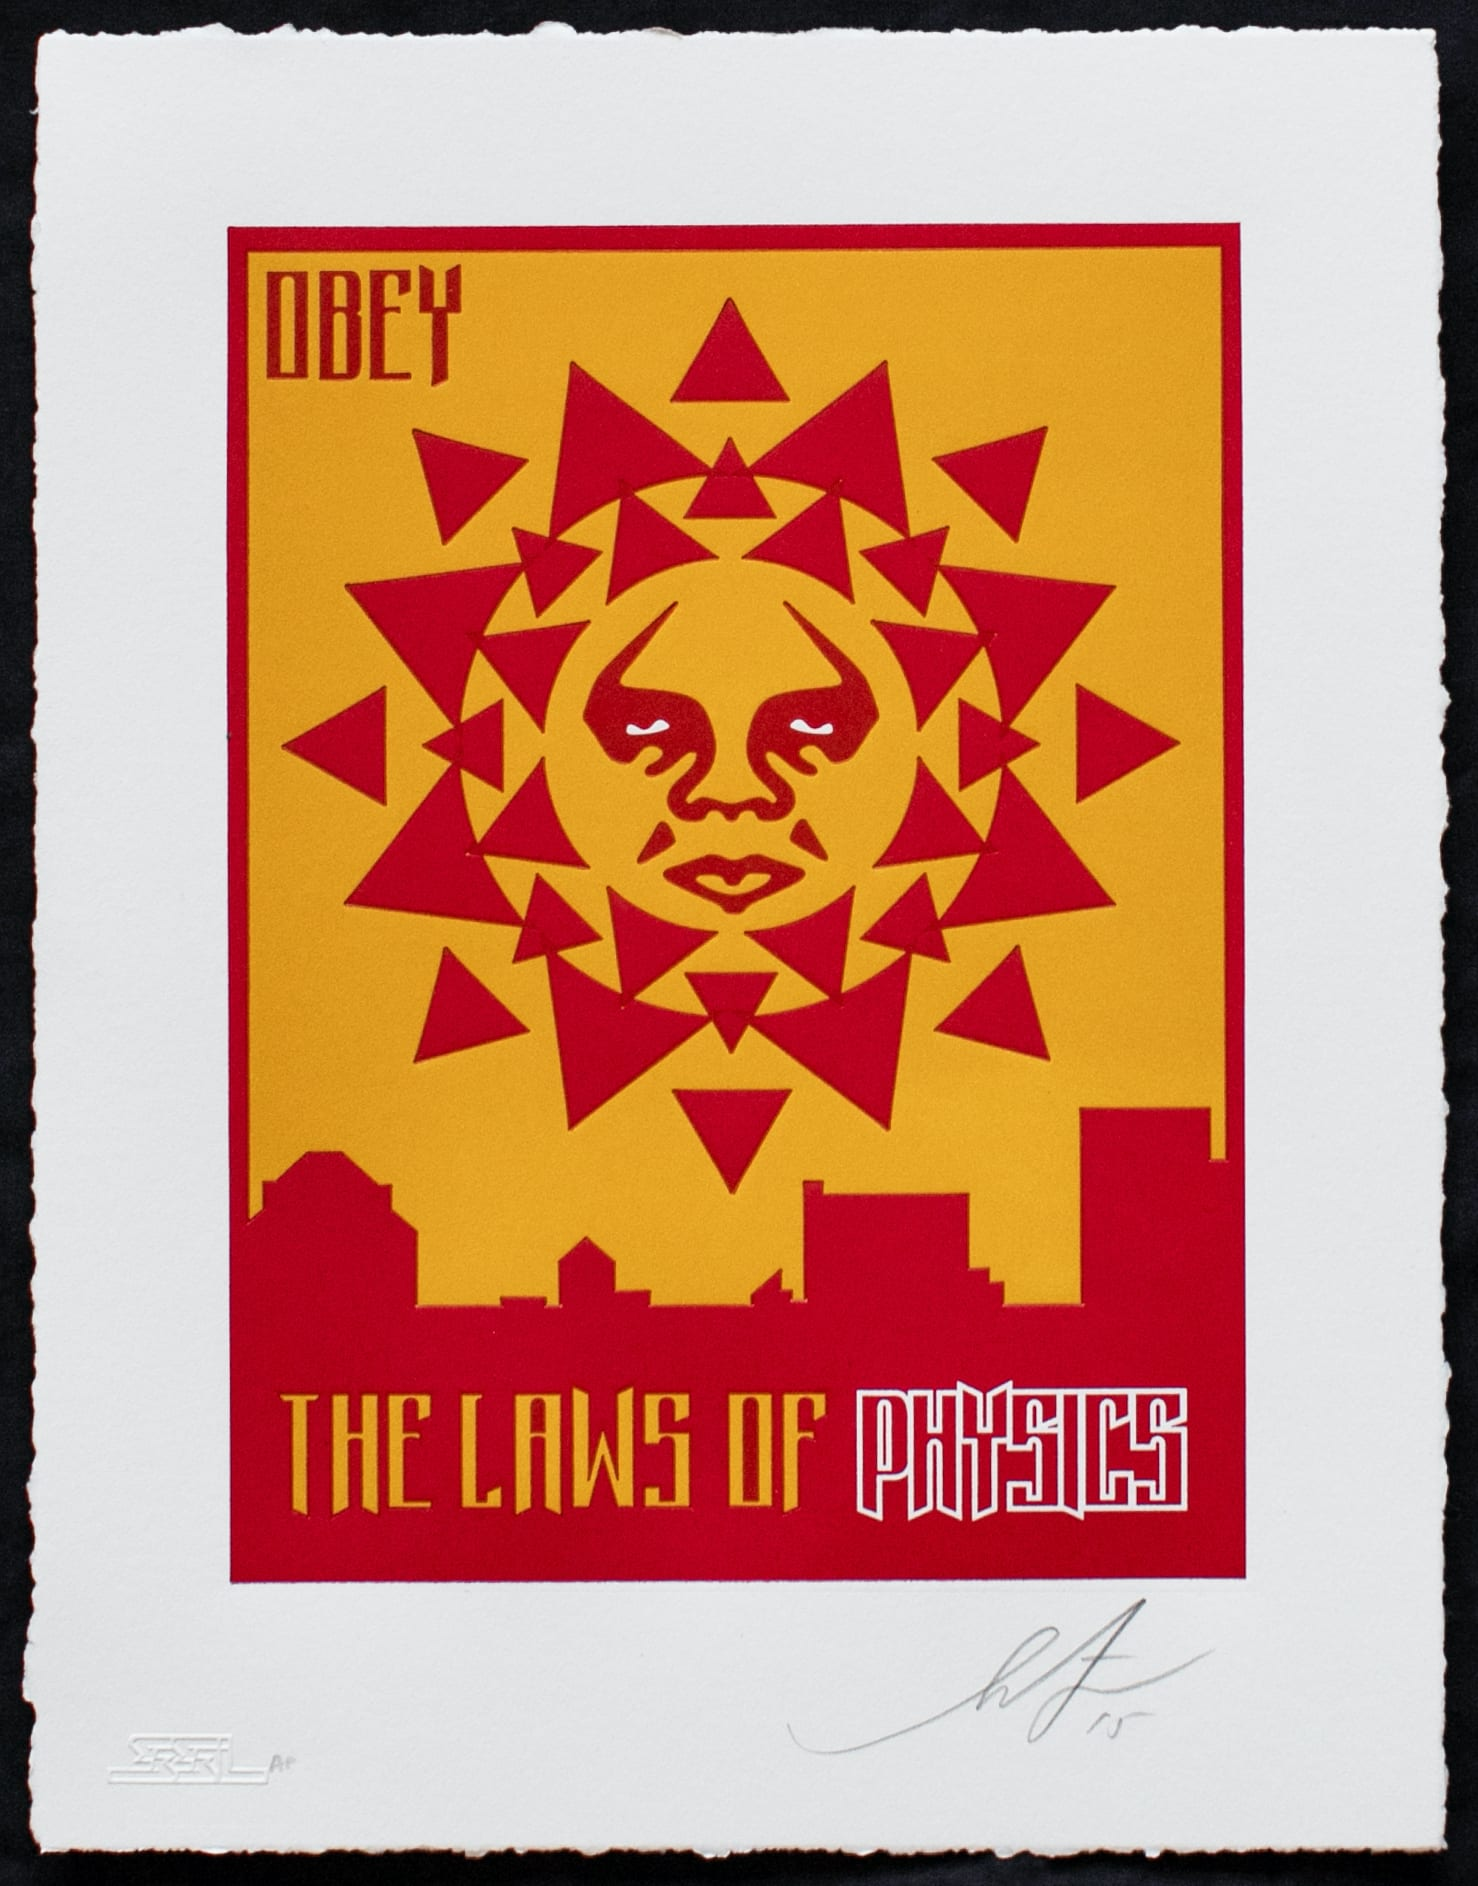 The laws of physics - Shepard Fairey Image 1